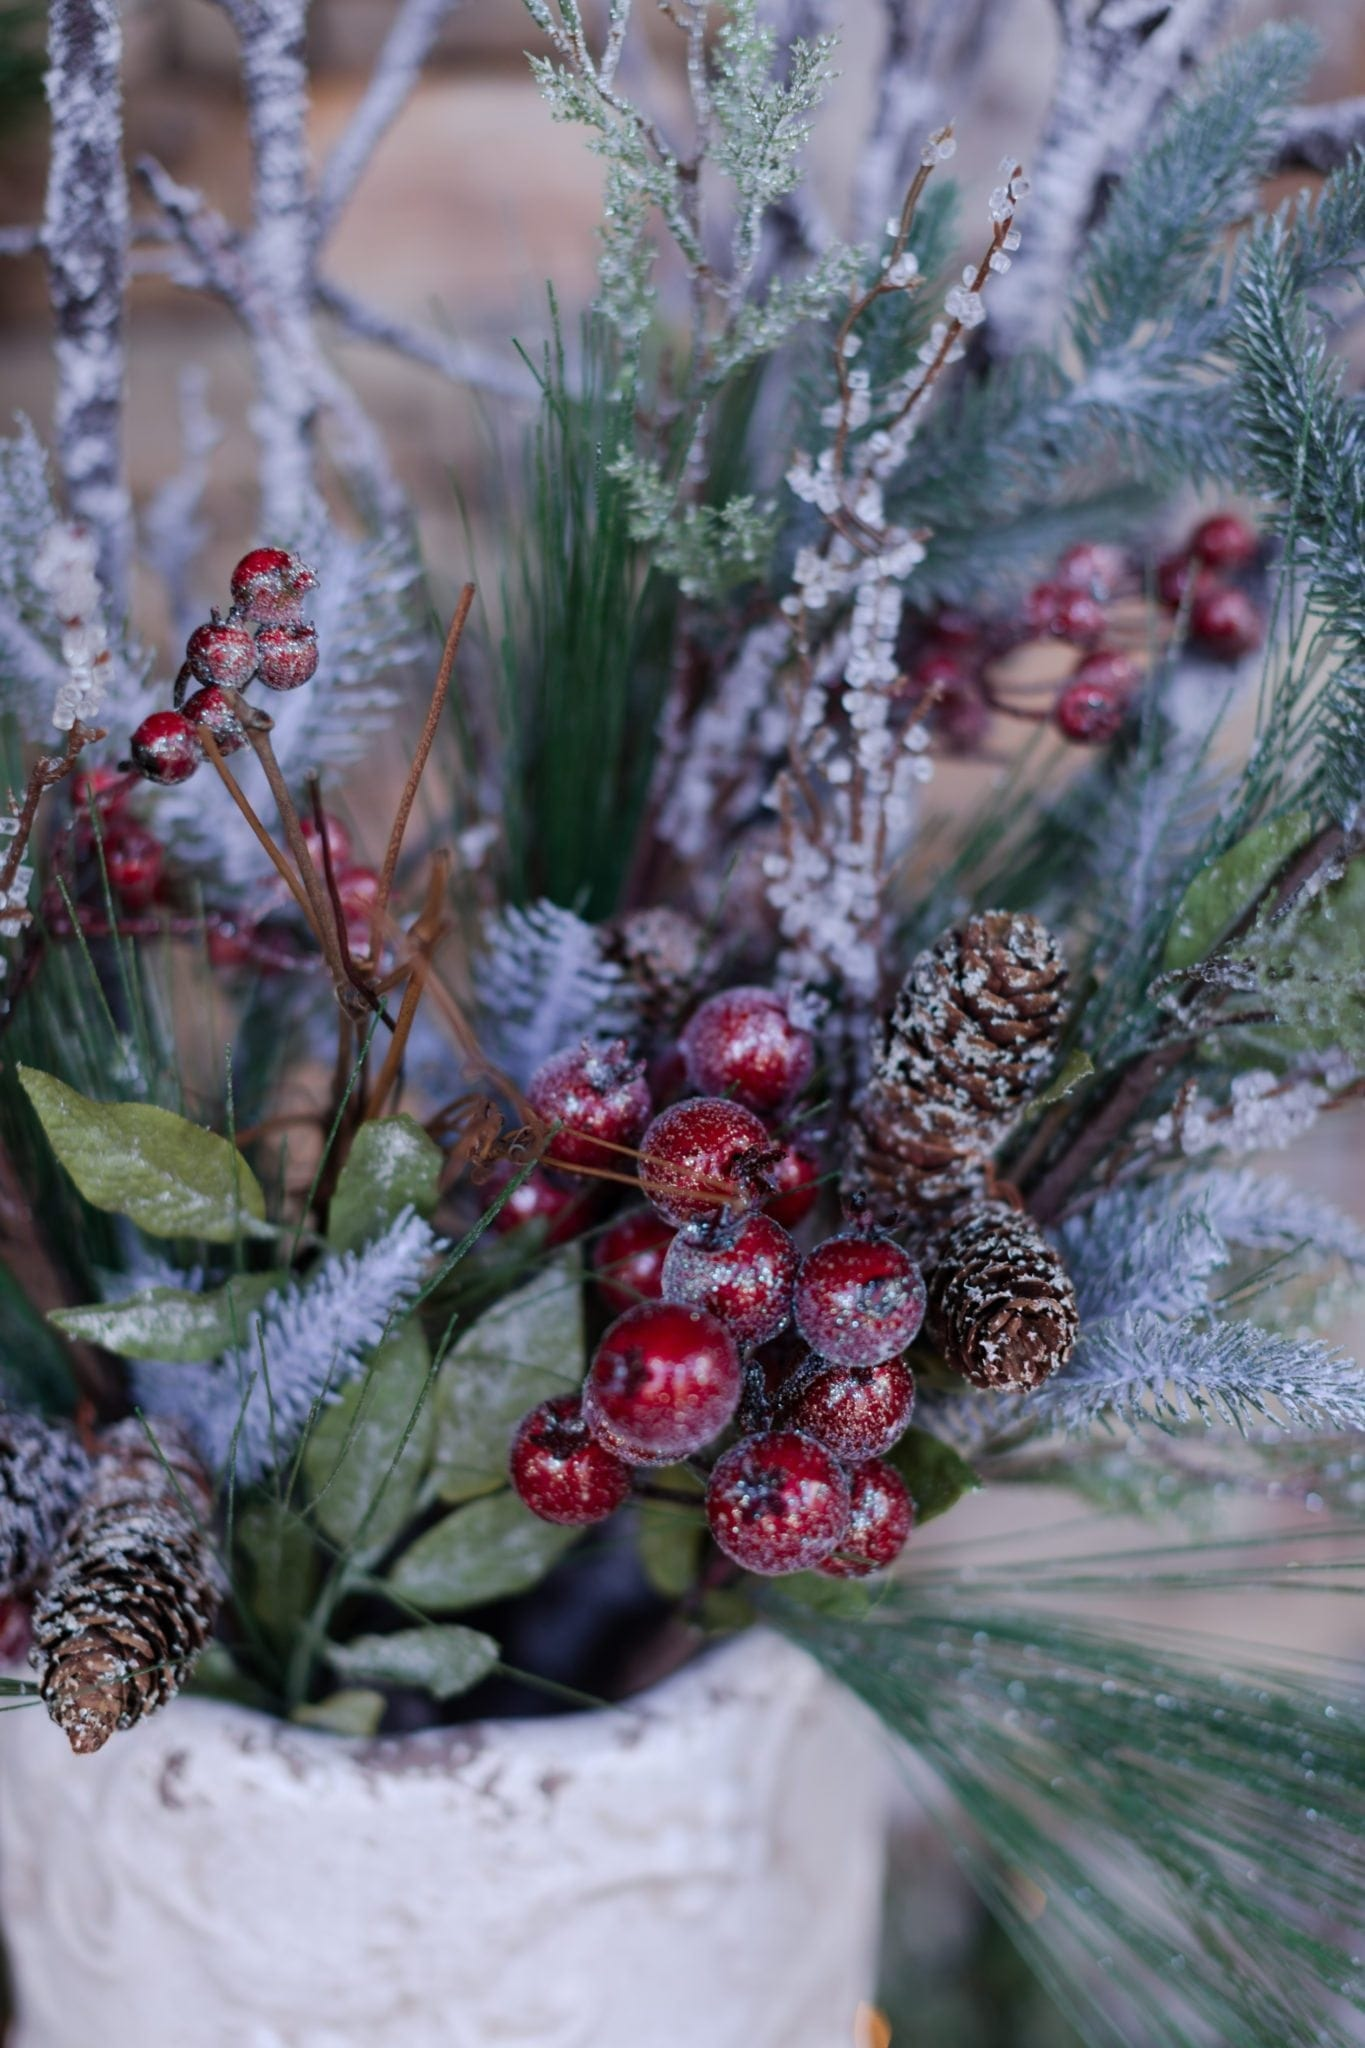 Christmas berries in outdoor decor.